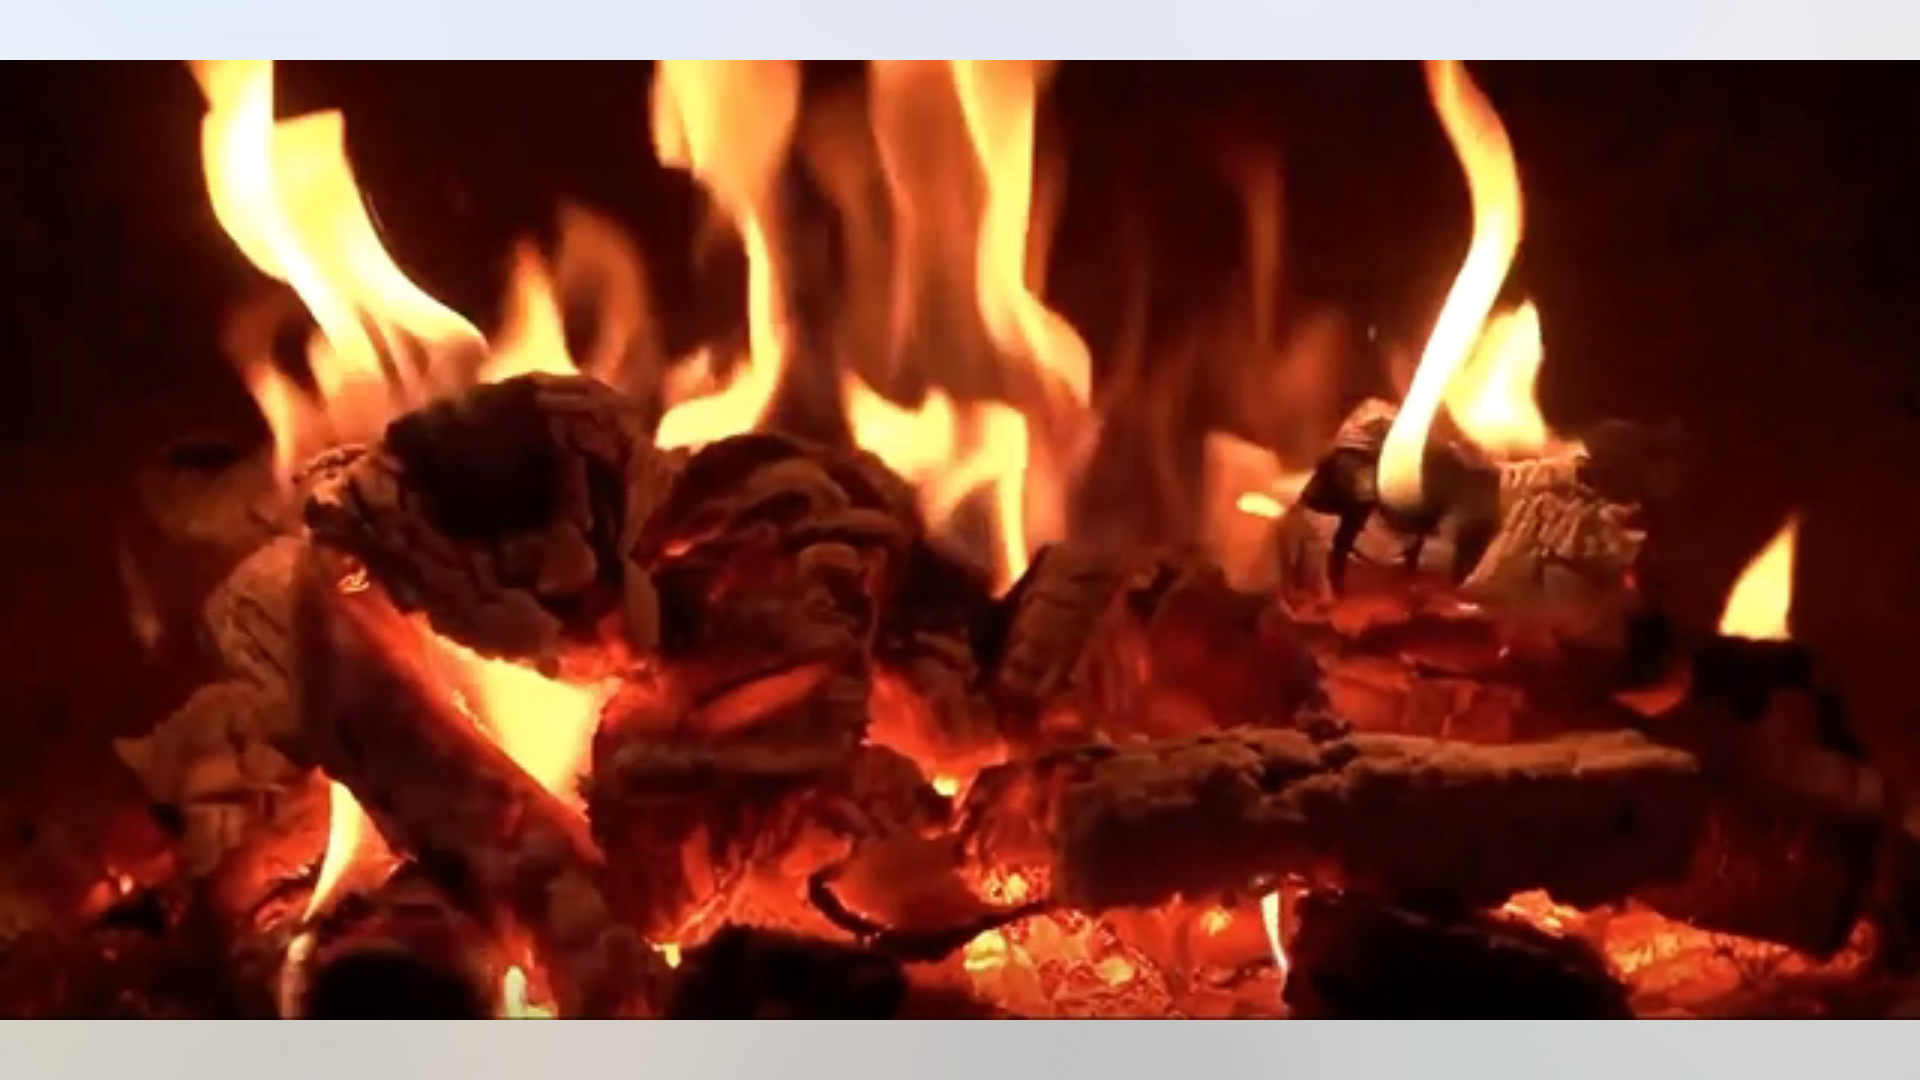 Fire Place Virtual screenshot 2